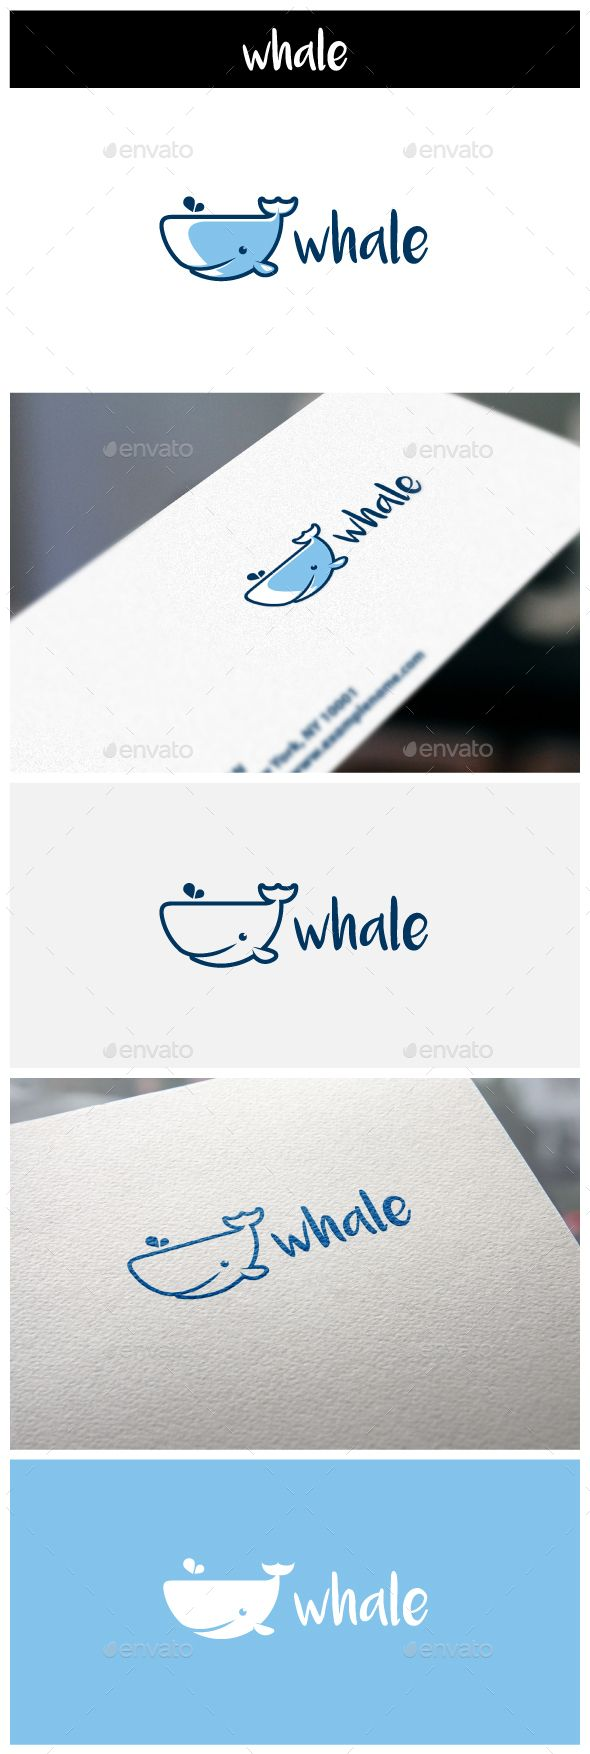 Whale Logo by siridhata Whale Logo. -100 vector (editable & resizable). - Contains both AI and EPS files. - CMYK - Organized layers. - The fonts use